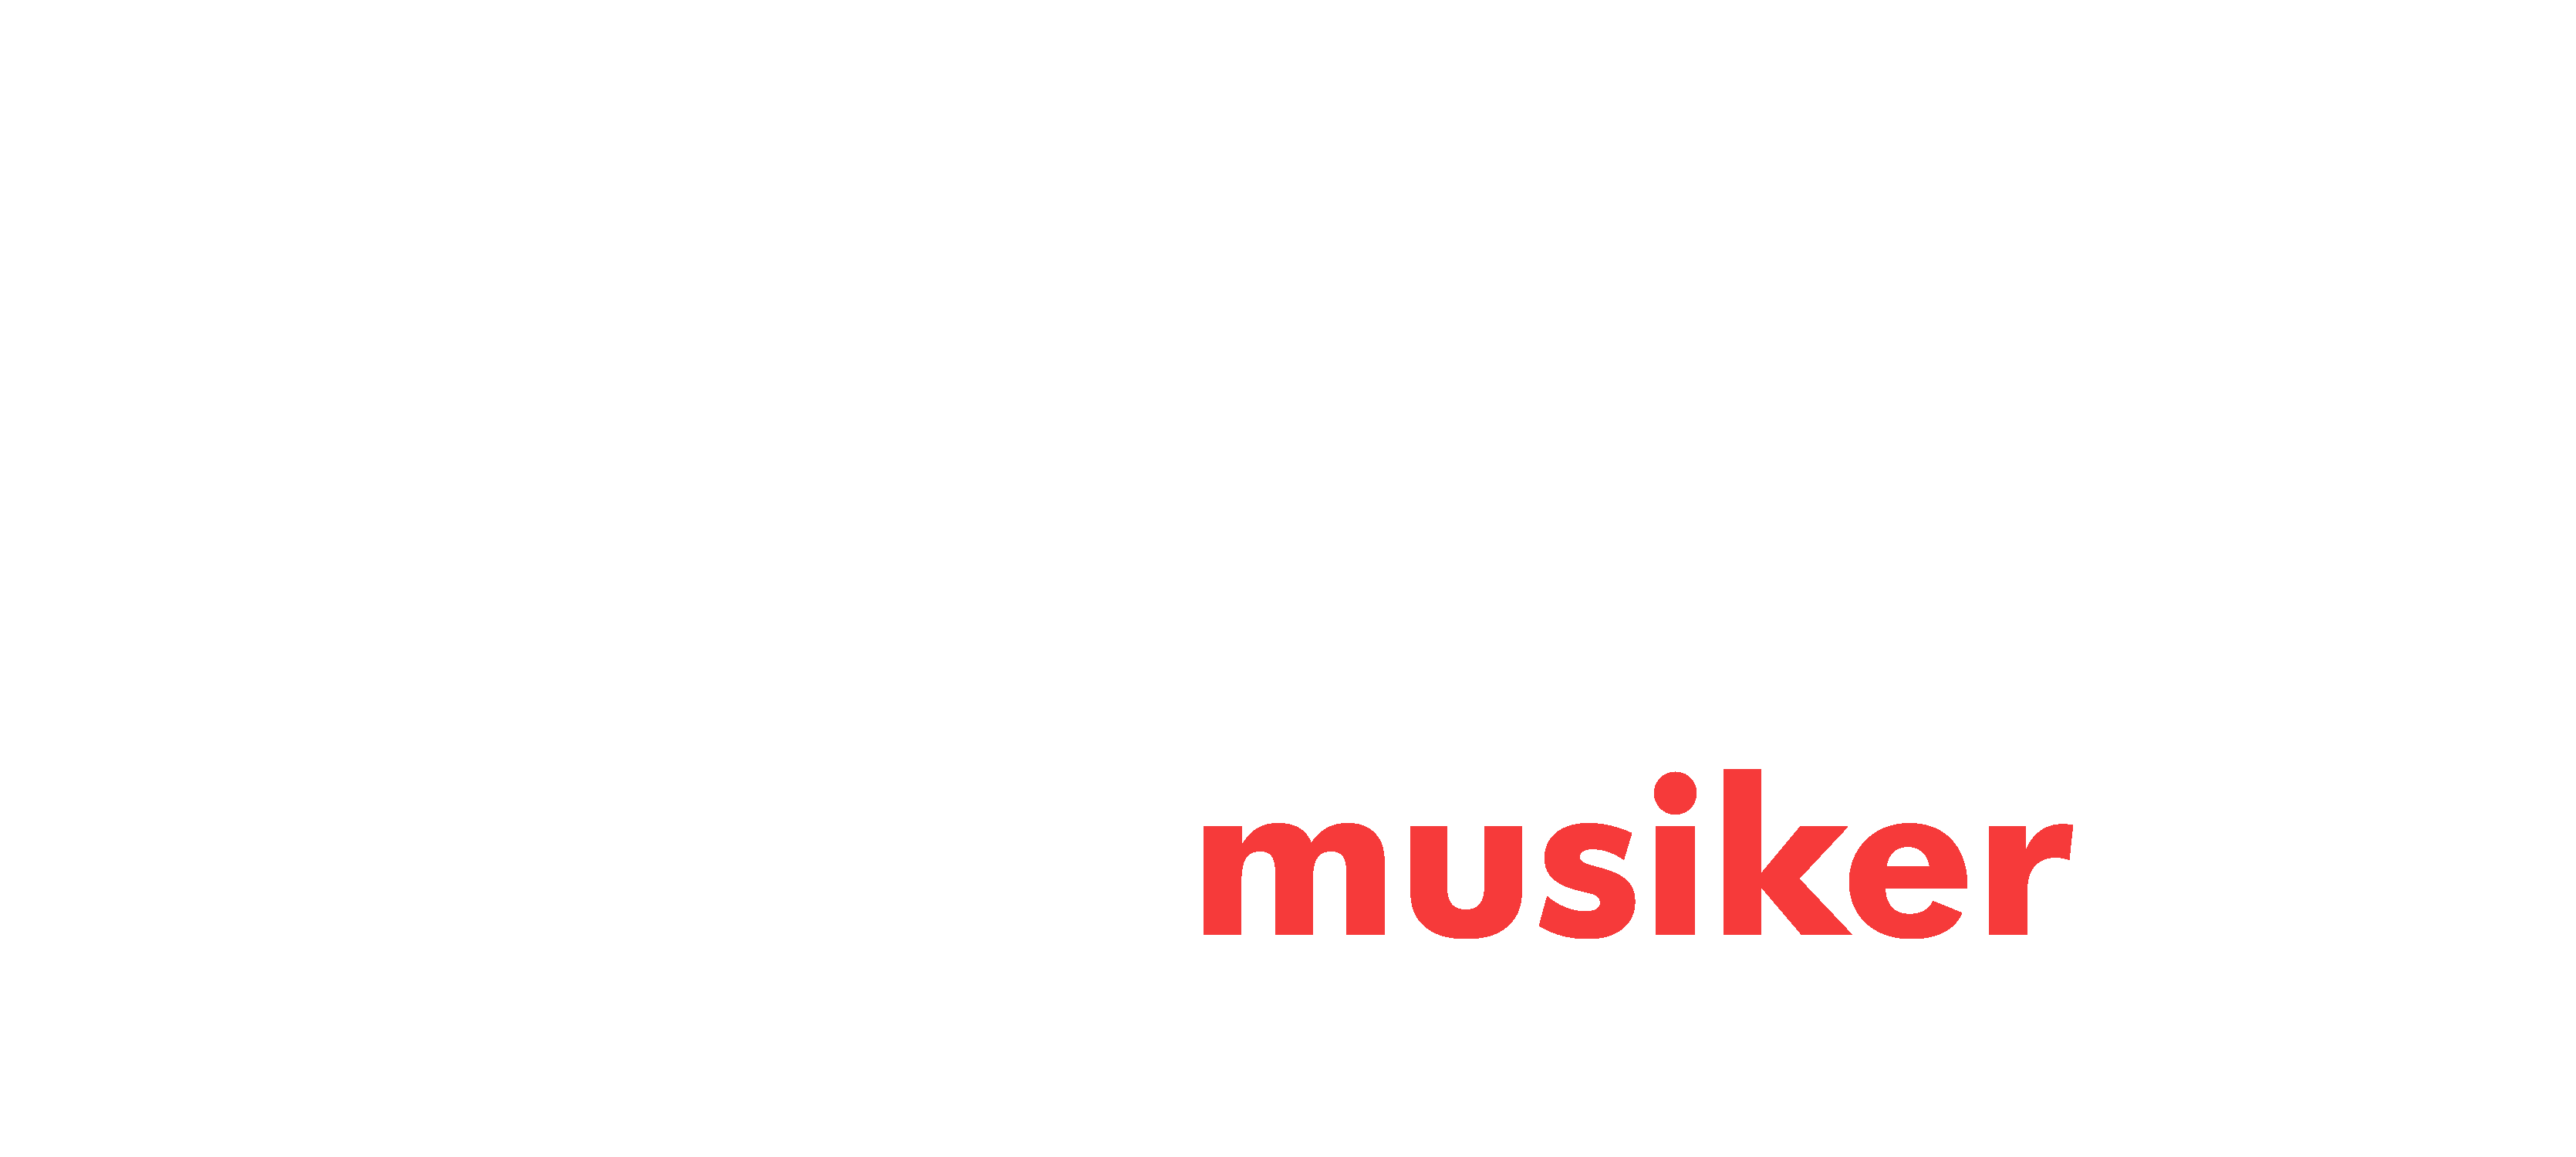 Learn to play guitar with werdemusiker.com